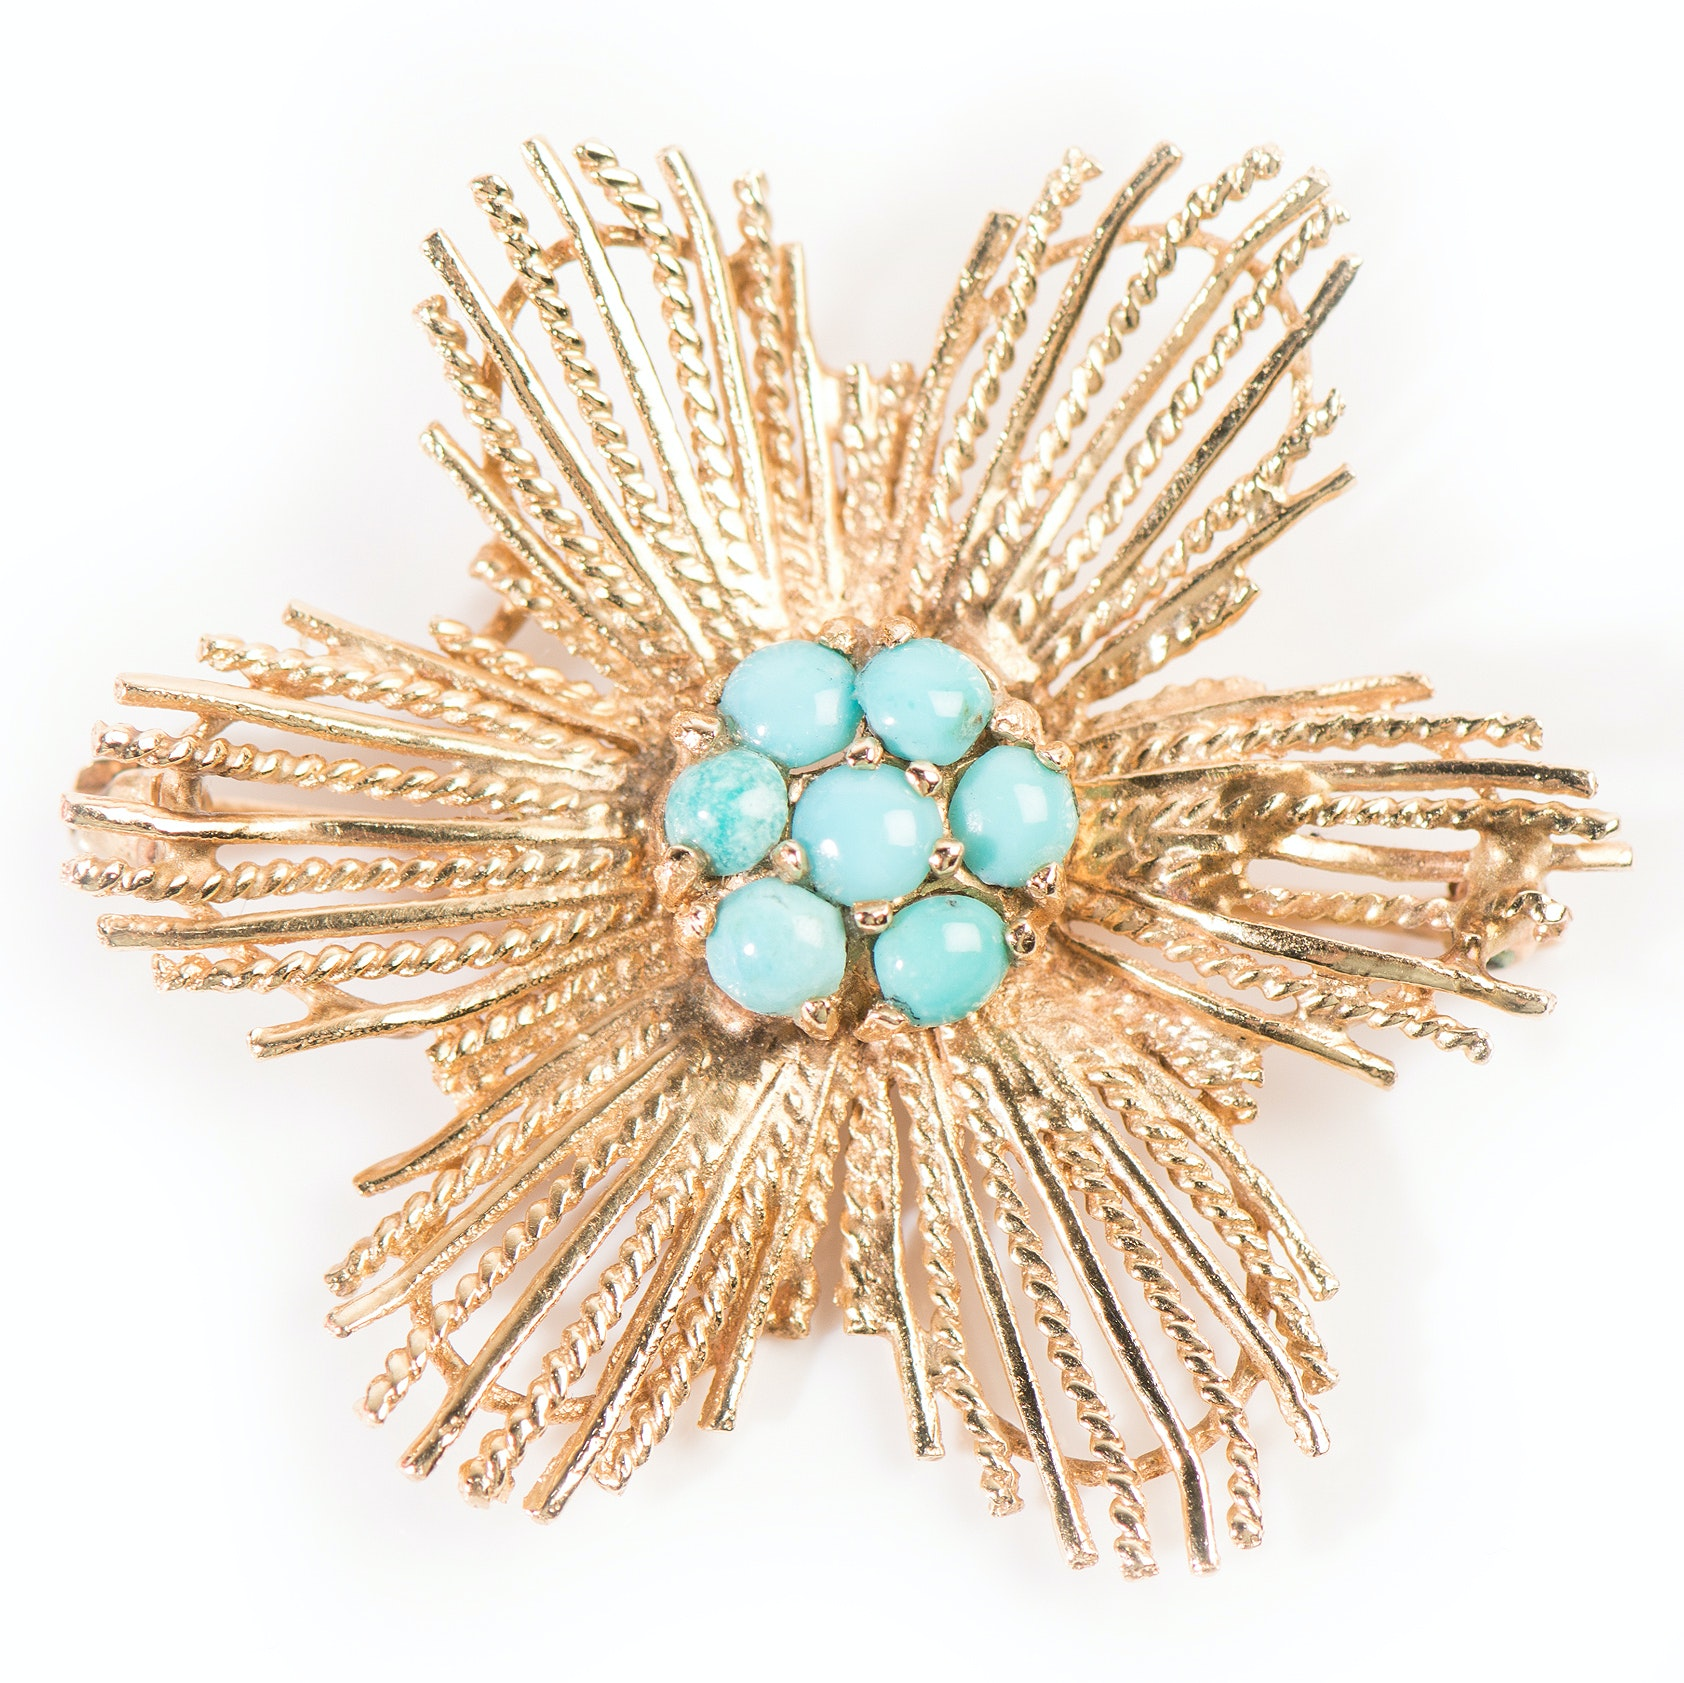 14K Yellow Gold Flower Brooch with Turquoise Center